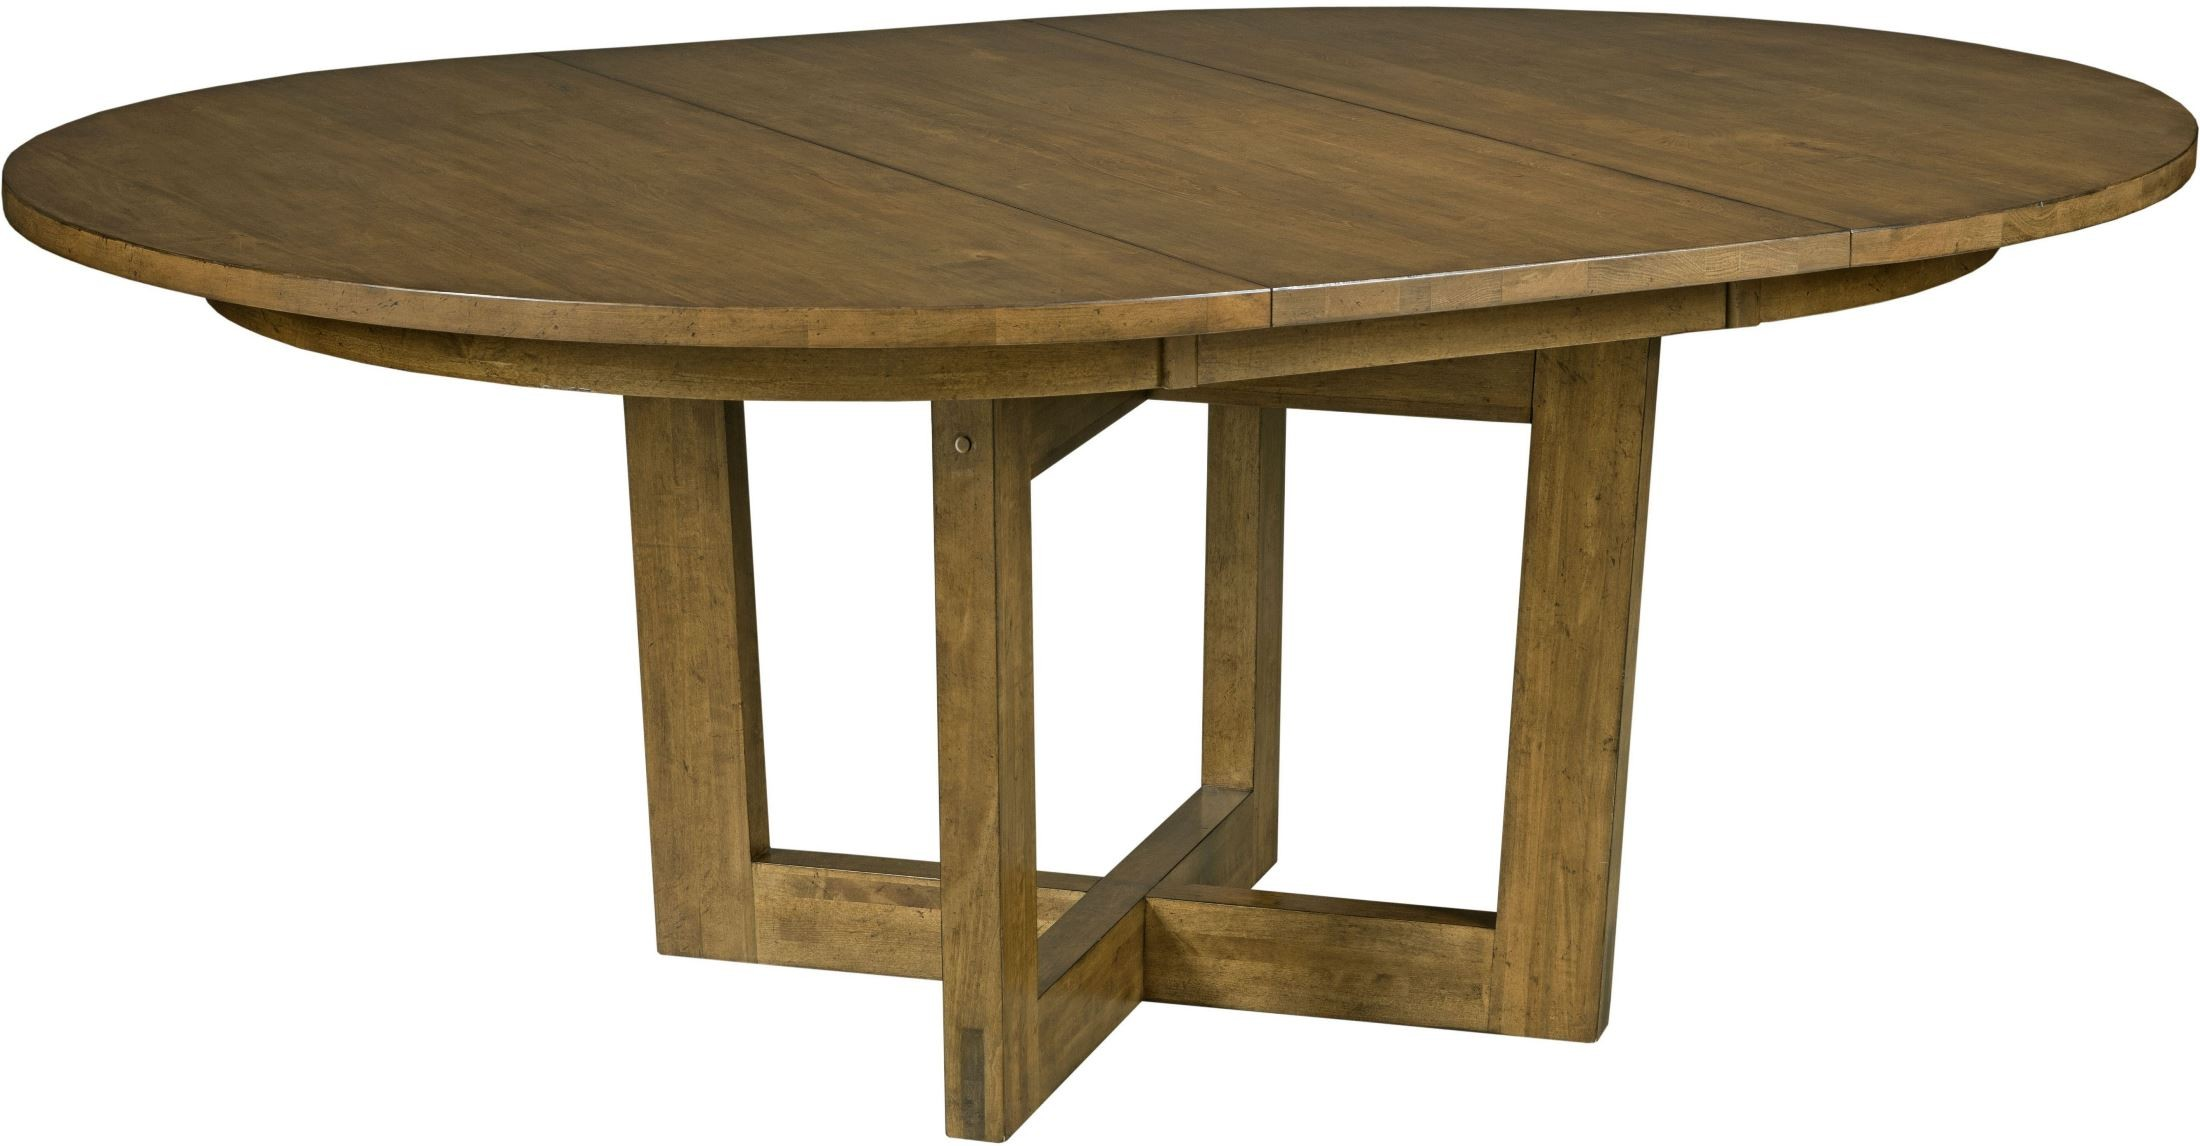 Traverse brown 54 drop leaf round dining table from for Round drop leaf dining table